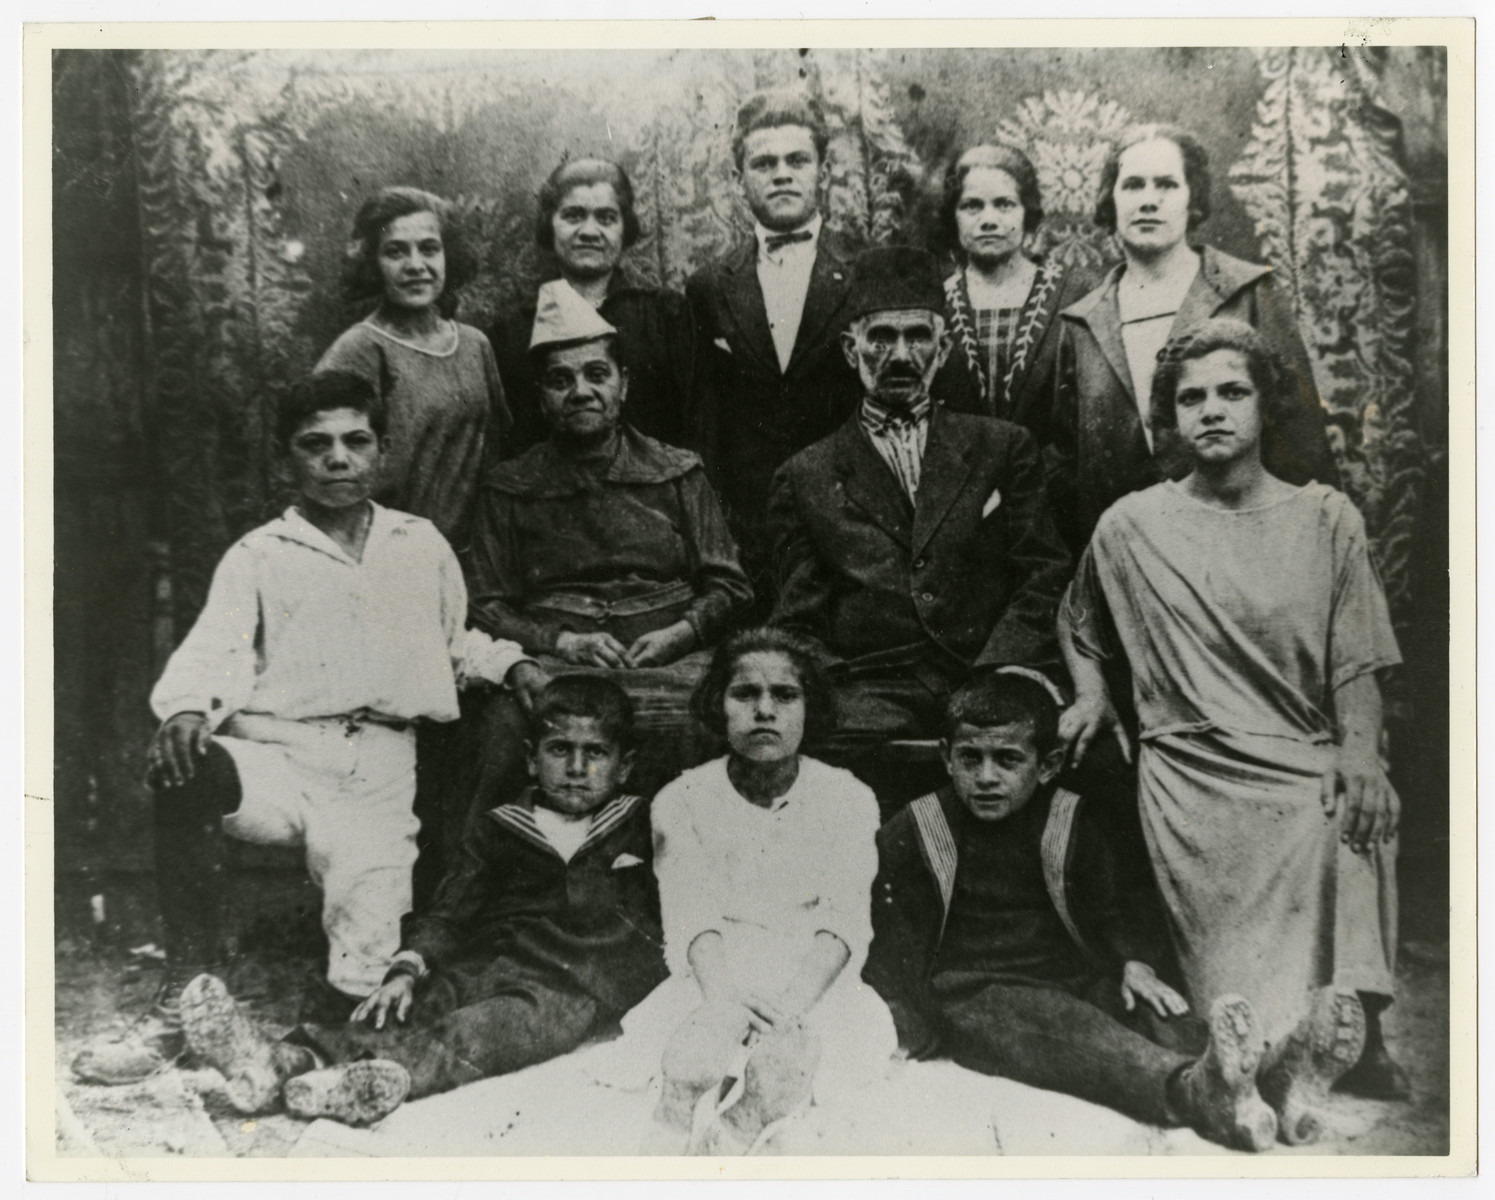 Group portrait of the Levi family in Banja Luka, Yugoslavia.   Moses and Rachel Levi are seated in the middle, surrounded by their ten children. David, in the white shirt, is next to his mother. The youngest son, Josef, is seated on the left.